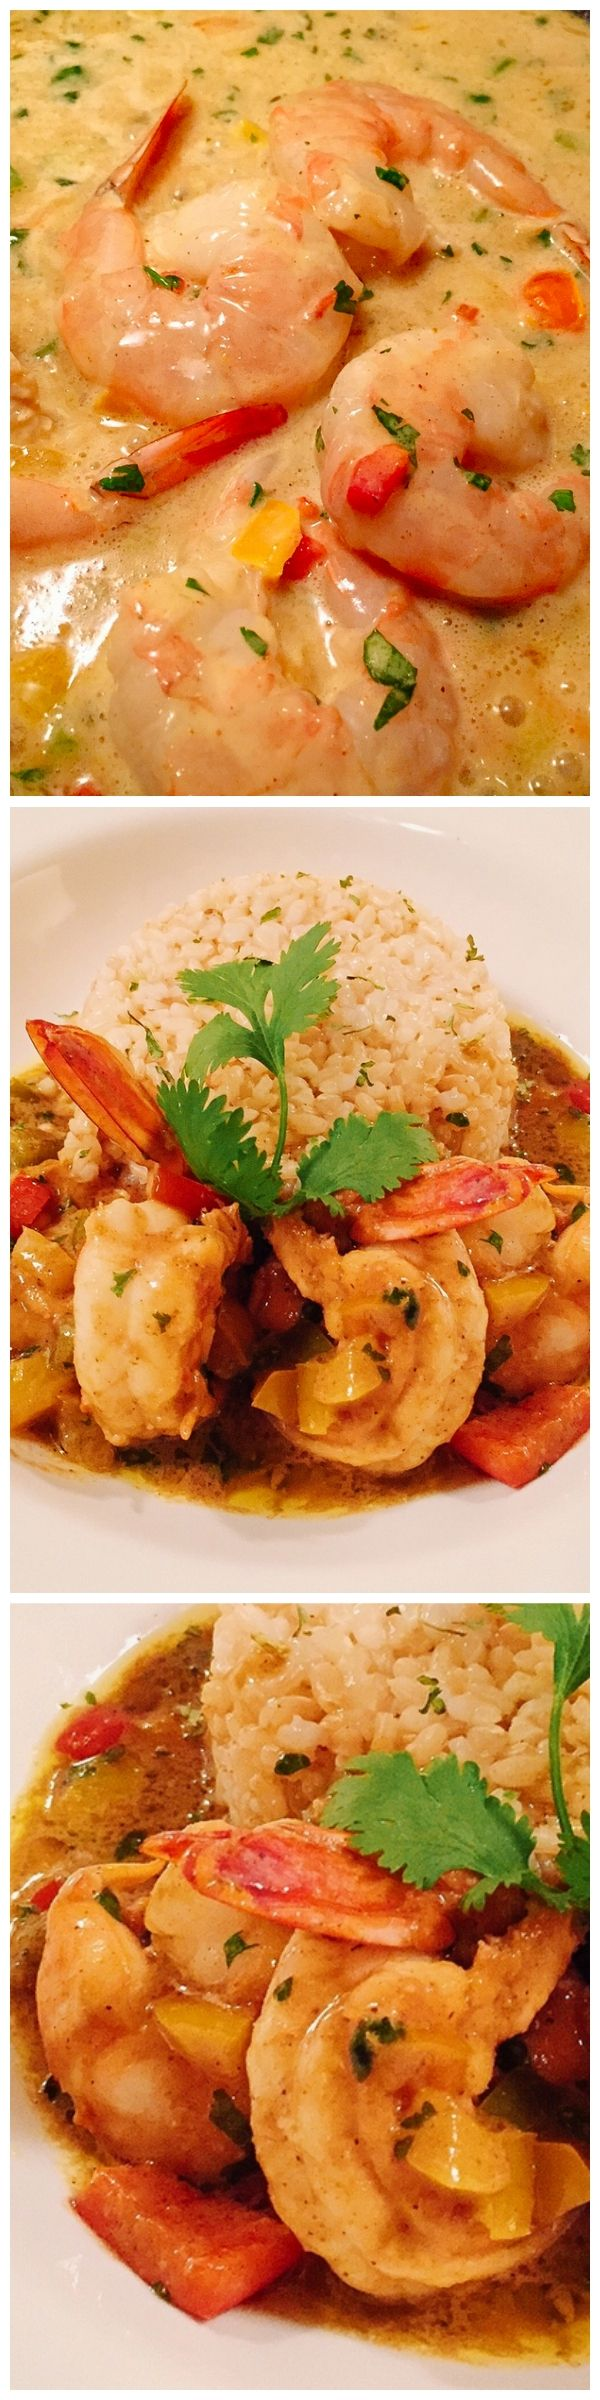 You can't go wrong with this dinner dish. Curry Coconut sauce with shrimp and brown rice.